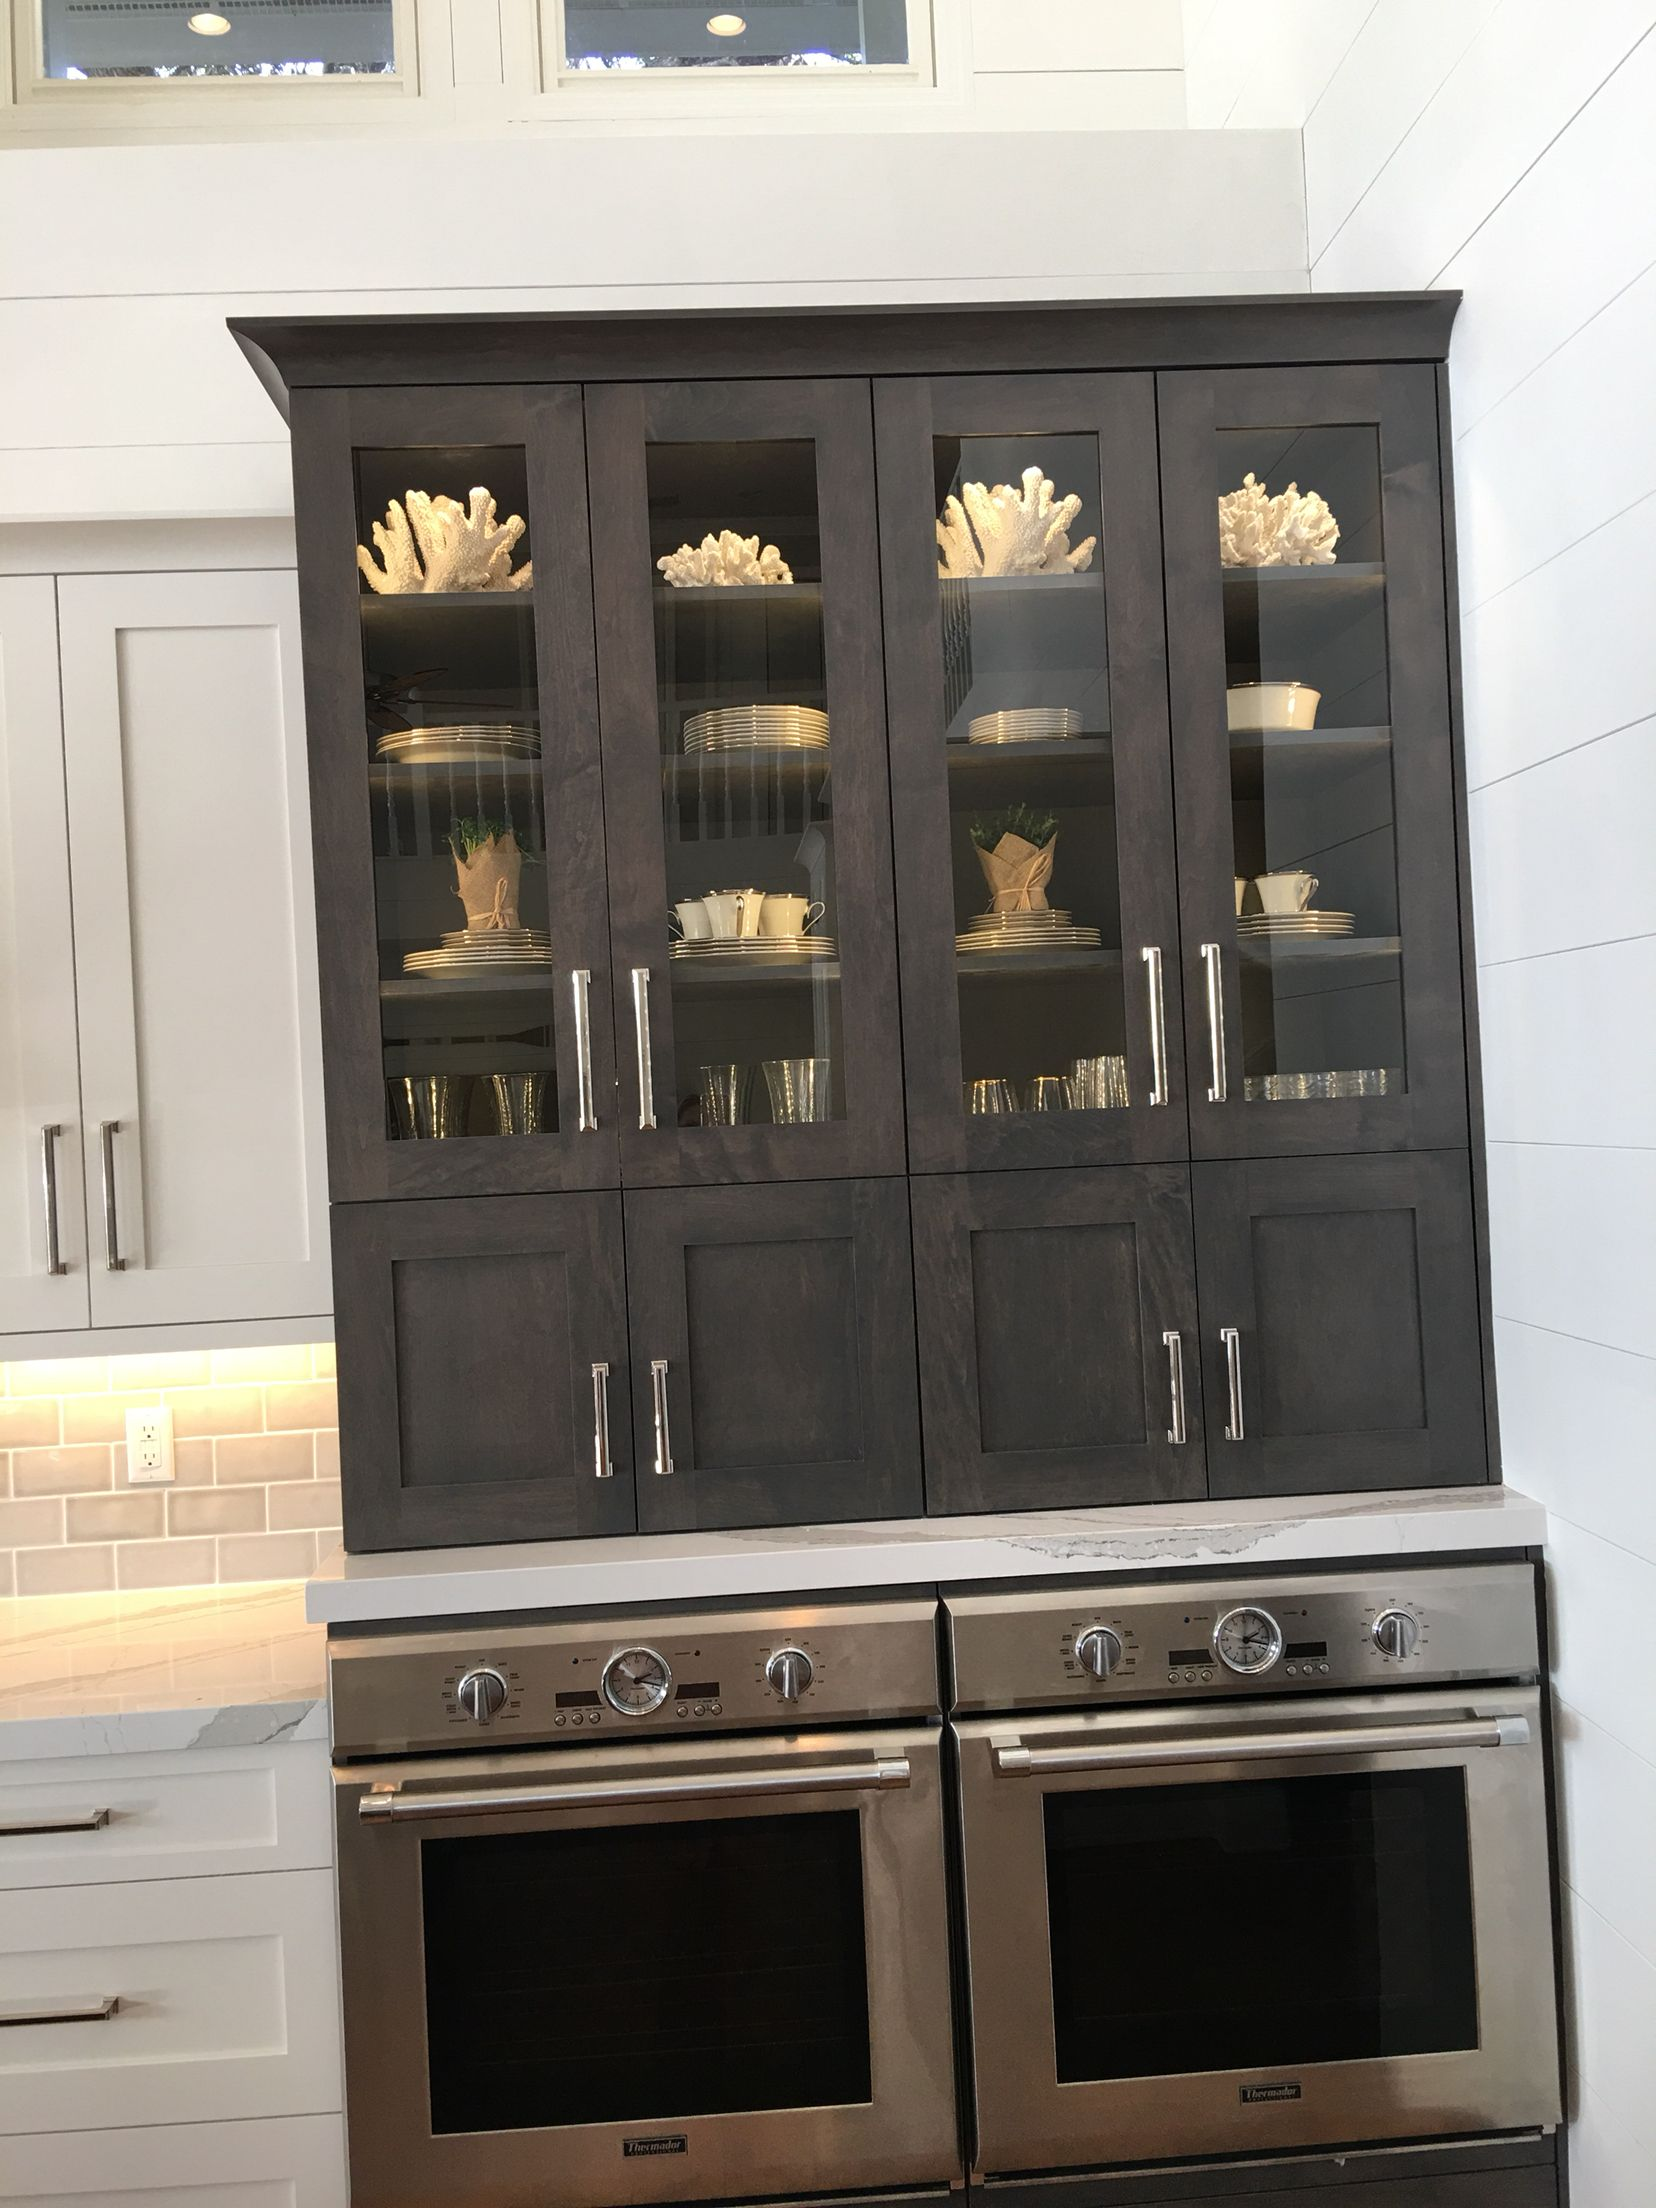 side by side double ovens over china cabinet thermadore explore coastal kitchens double ovens and more